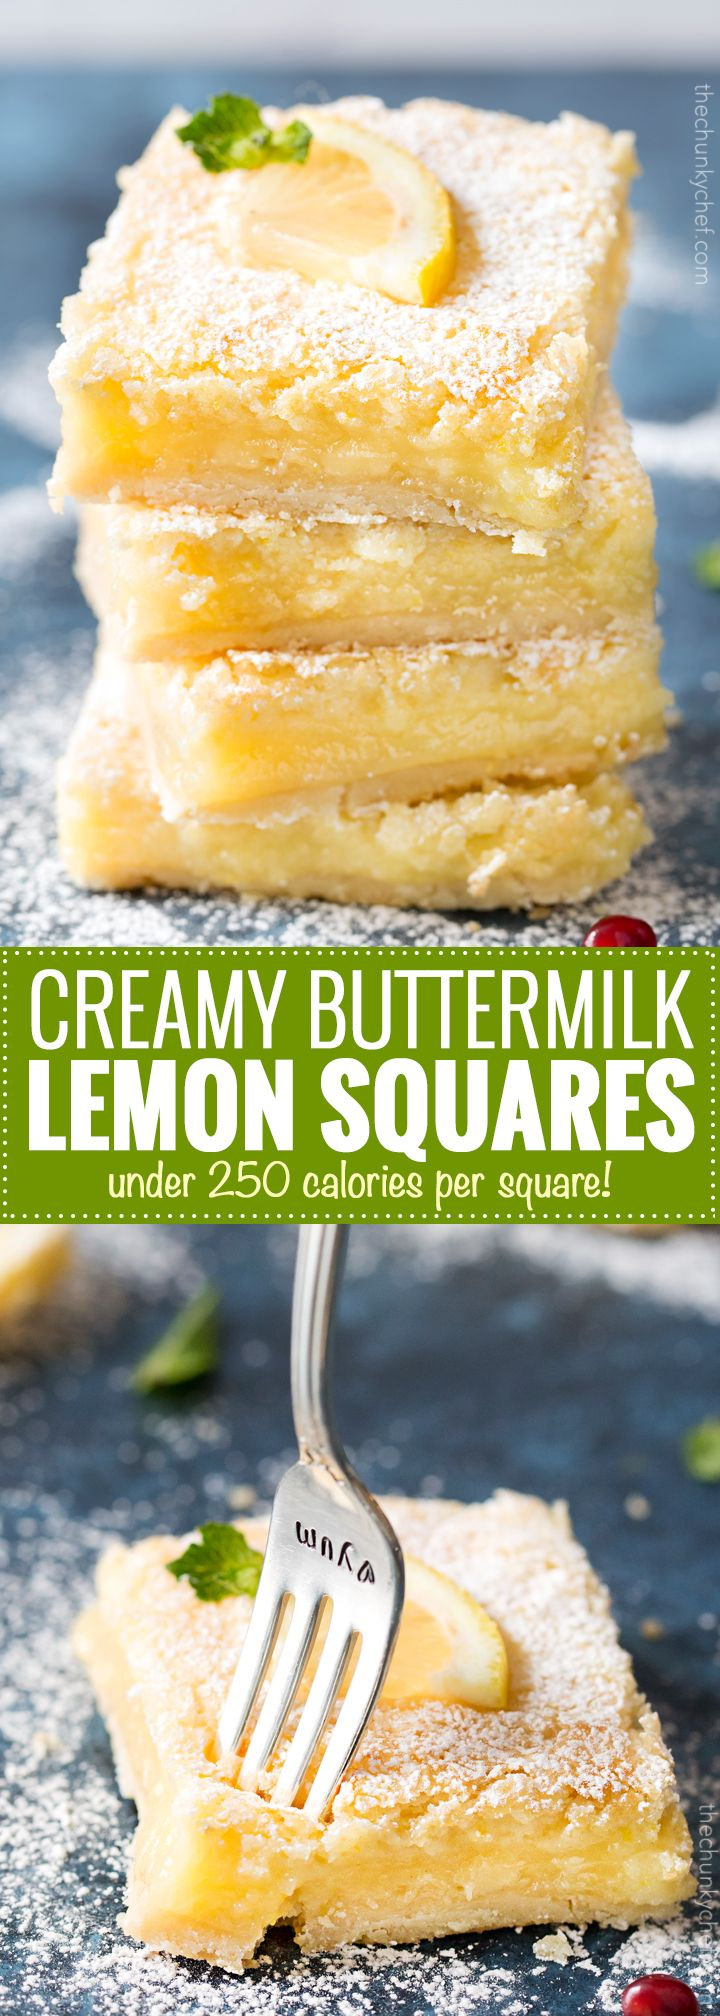 Best Buttermilk Lemon Squares | Made 100% from scratch, these lemon squares feature a buttery shortbread crust, thick, creamy, lemon filling, and are easy for anyone to make! | http://thechunkychef.com